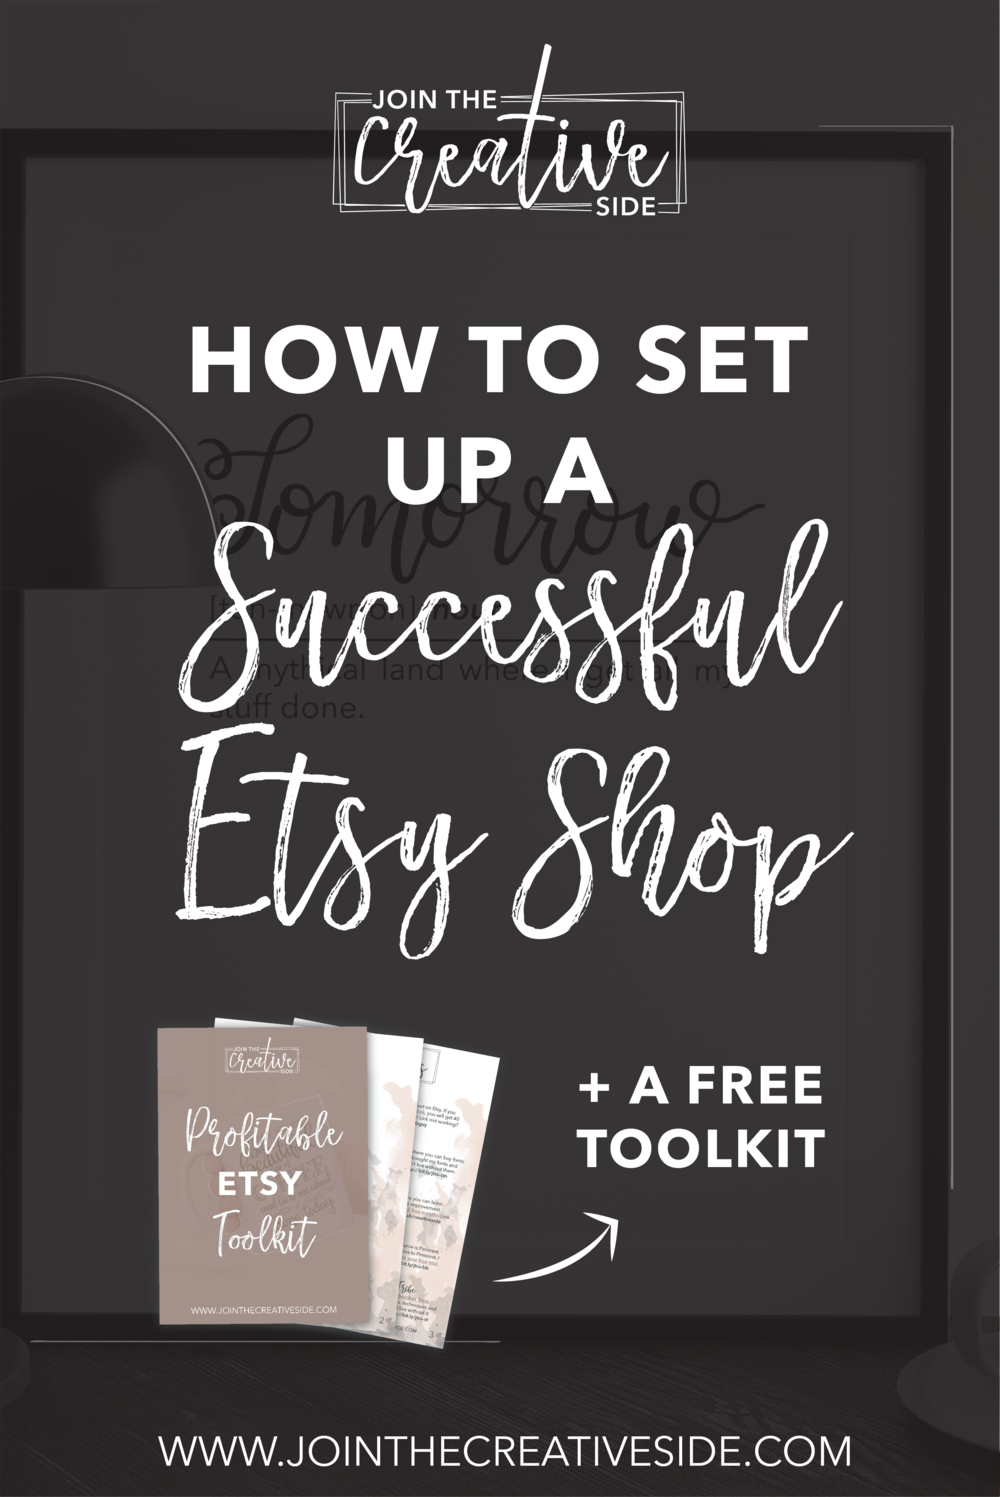 Join The Creative Side | How to set up a successful Etsy shop, and start making sales right away. I will guide you through every step to set up your successful Etsy shop, so you are ready to make sales right away.